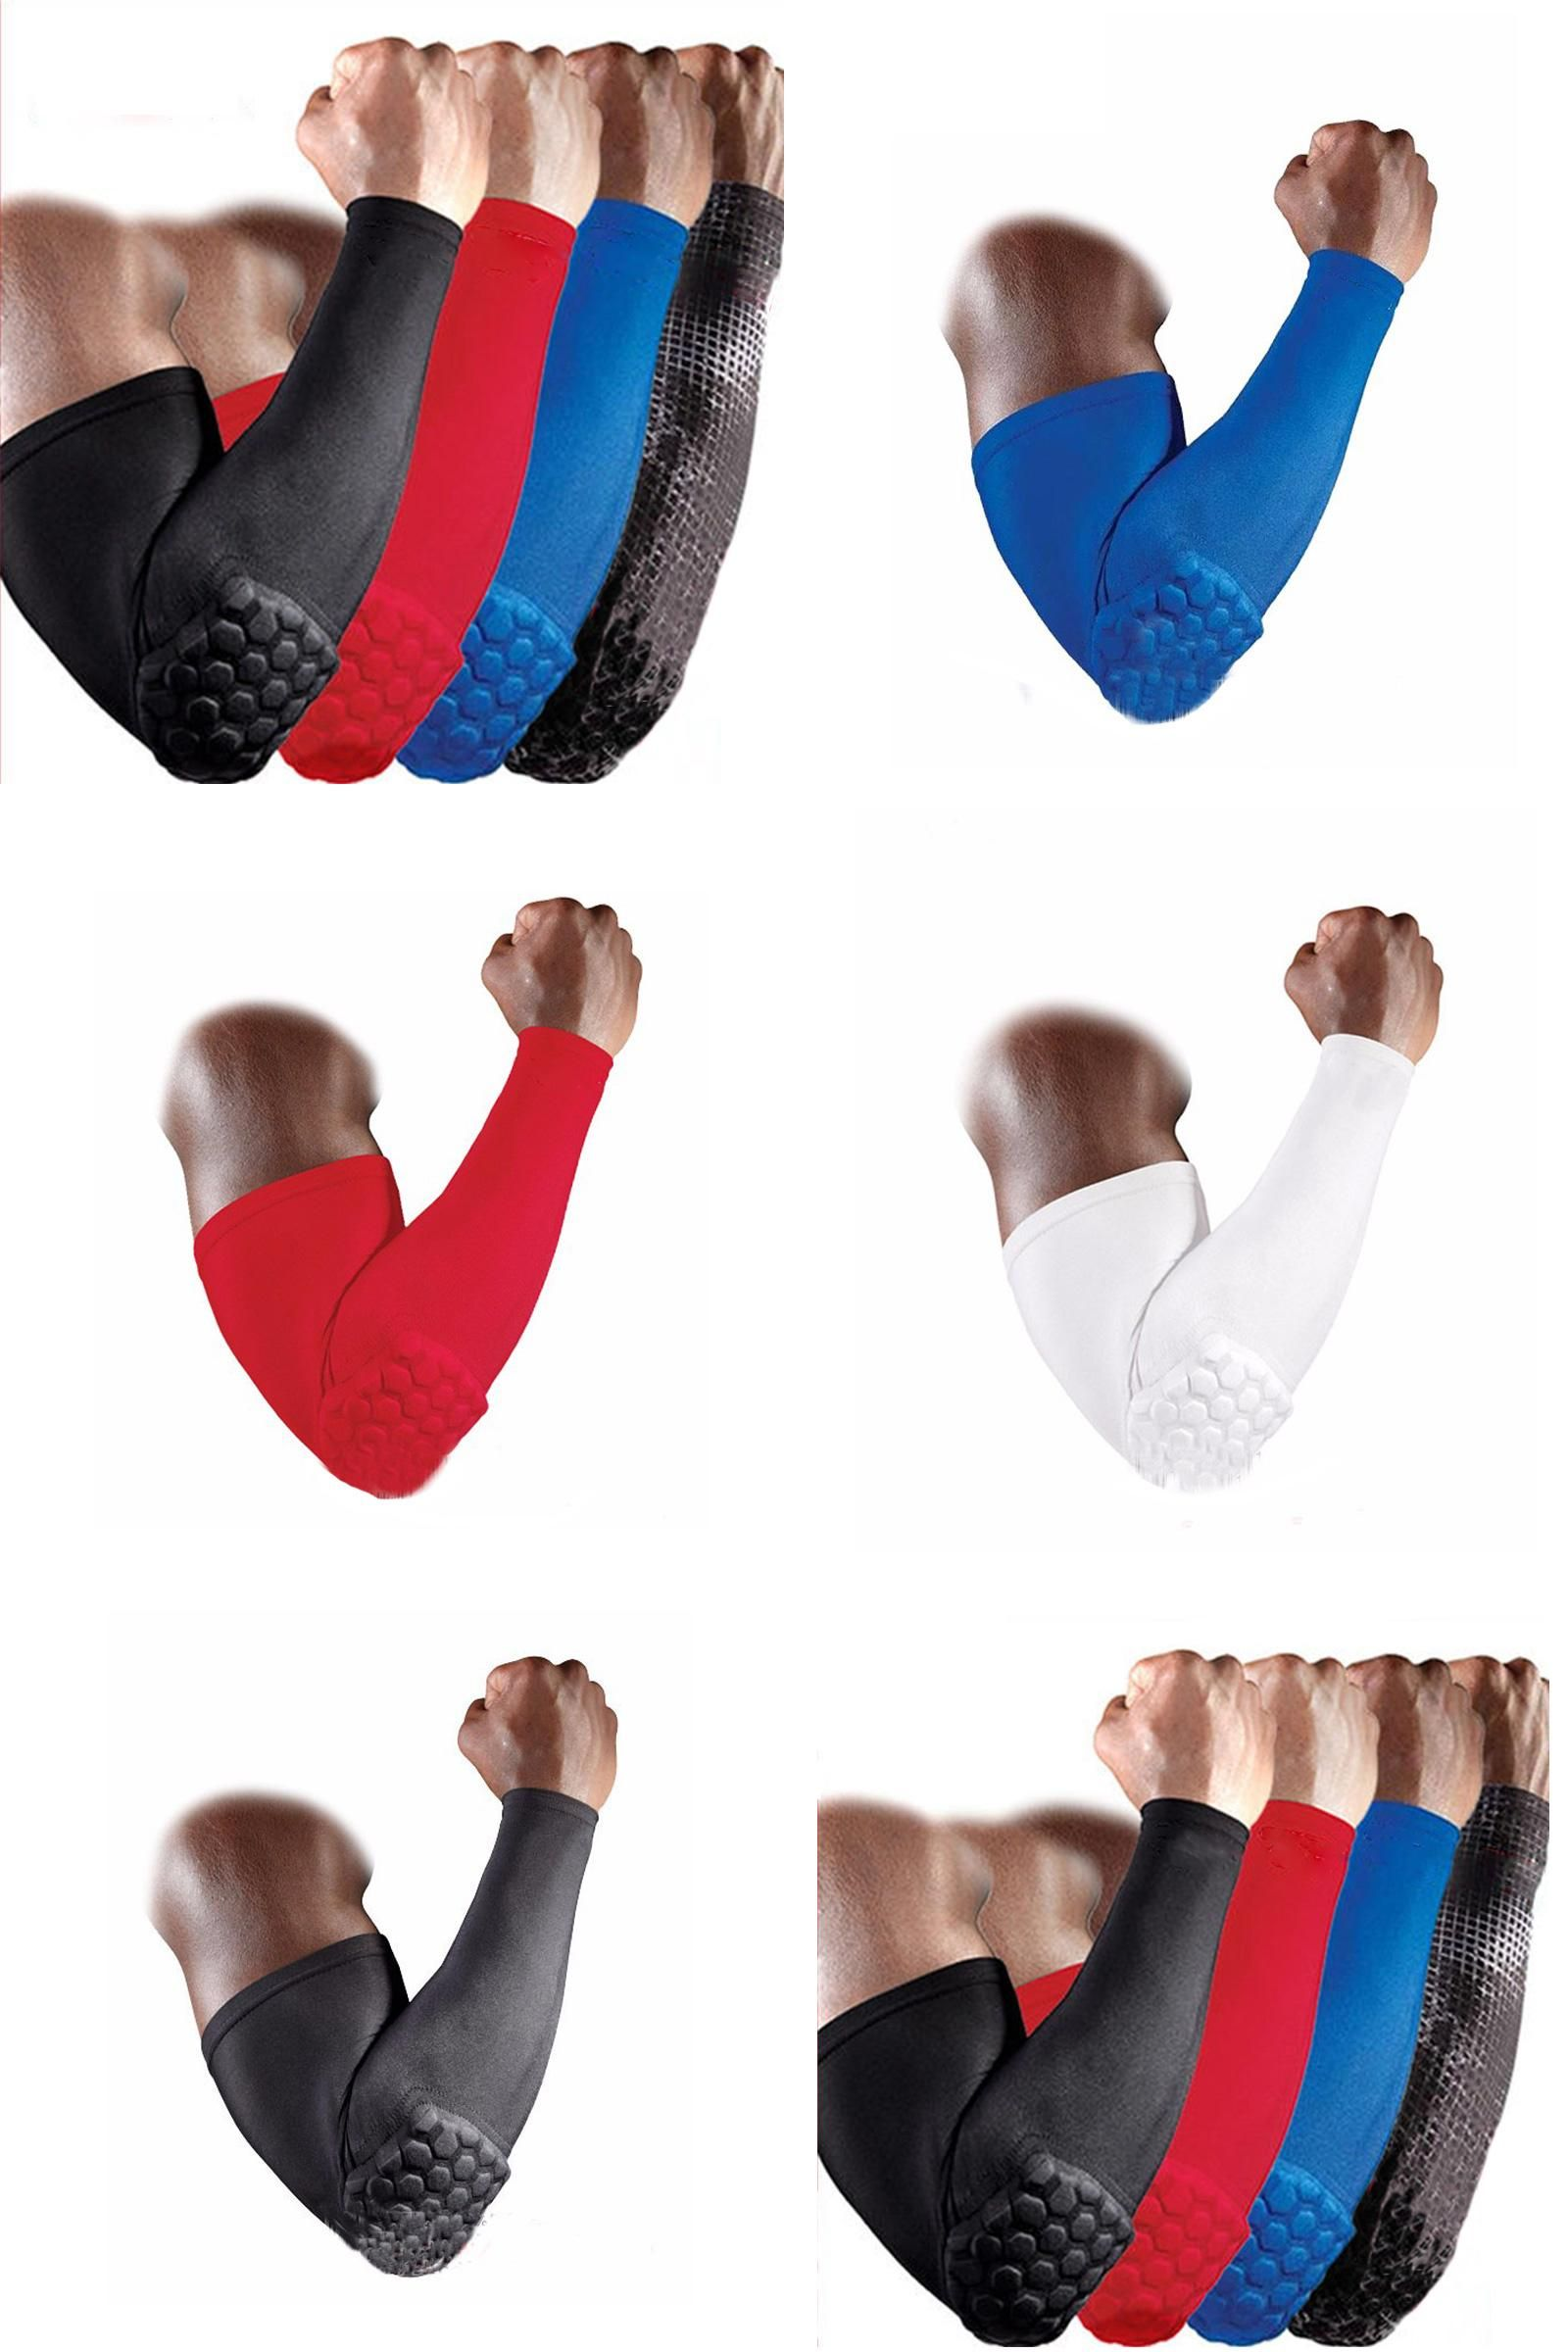 Visit To Buy 1pcs Basketball Volleyball Honeycomb Elbow Pads Protector Elbow Support Brace Guard Elastic Sport S Elbow Pads Elbow Support Elbow Support Brace